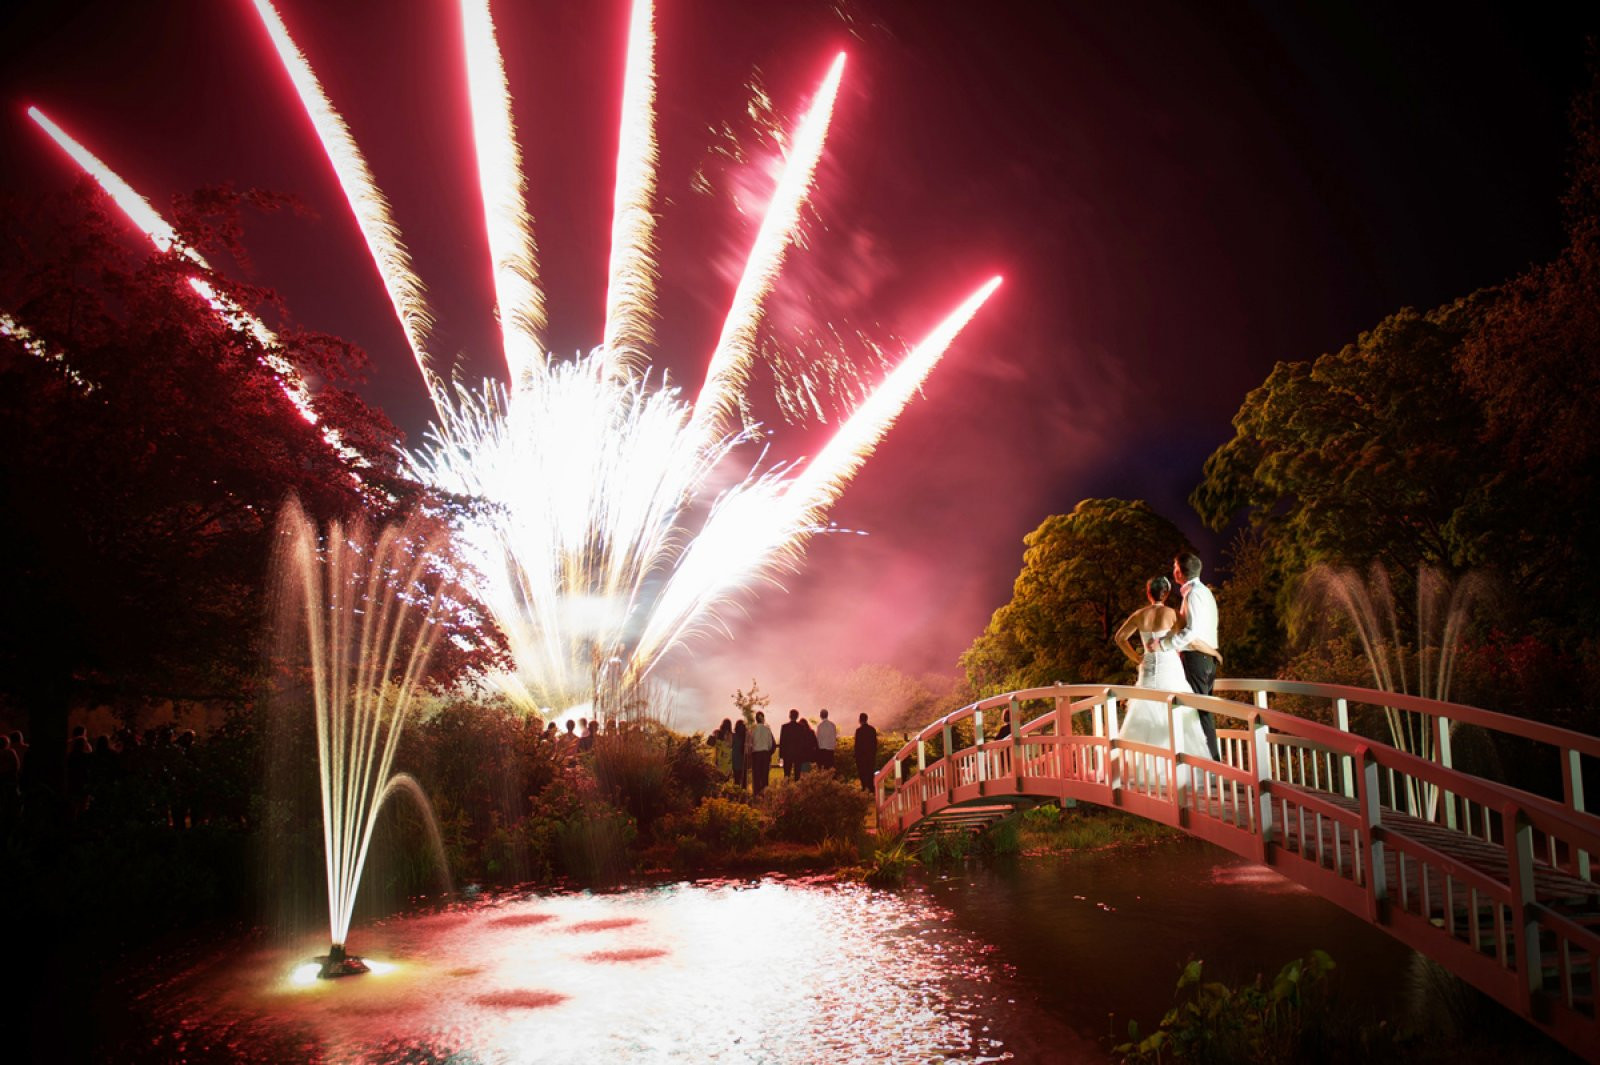 Komodo Fireworks - Fireworks on WeddingPlanner.co.uk